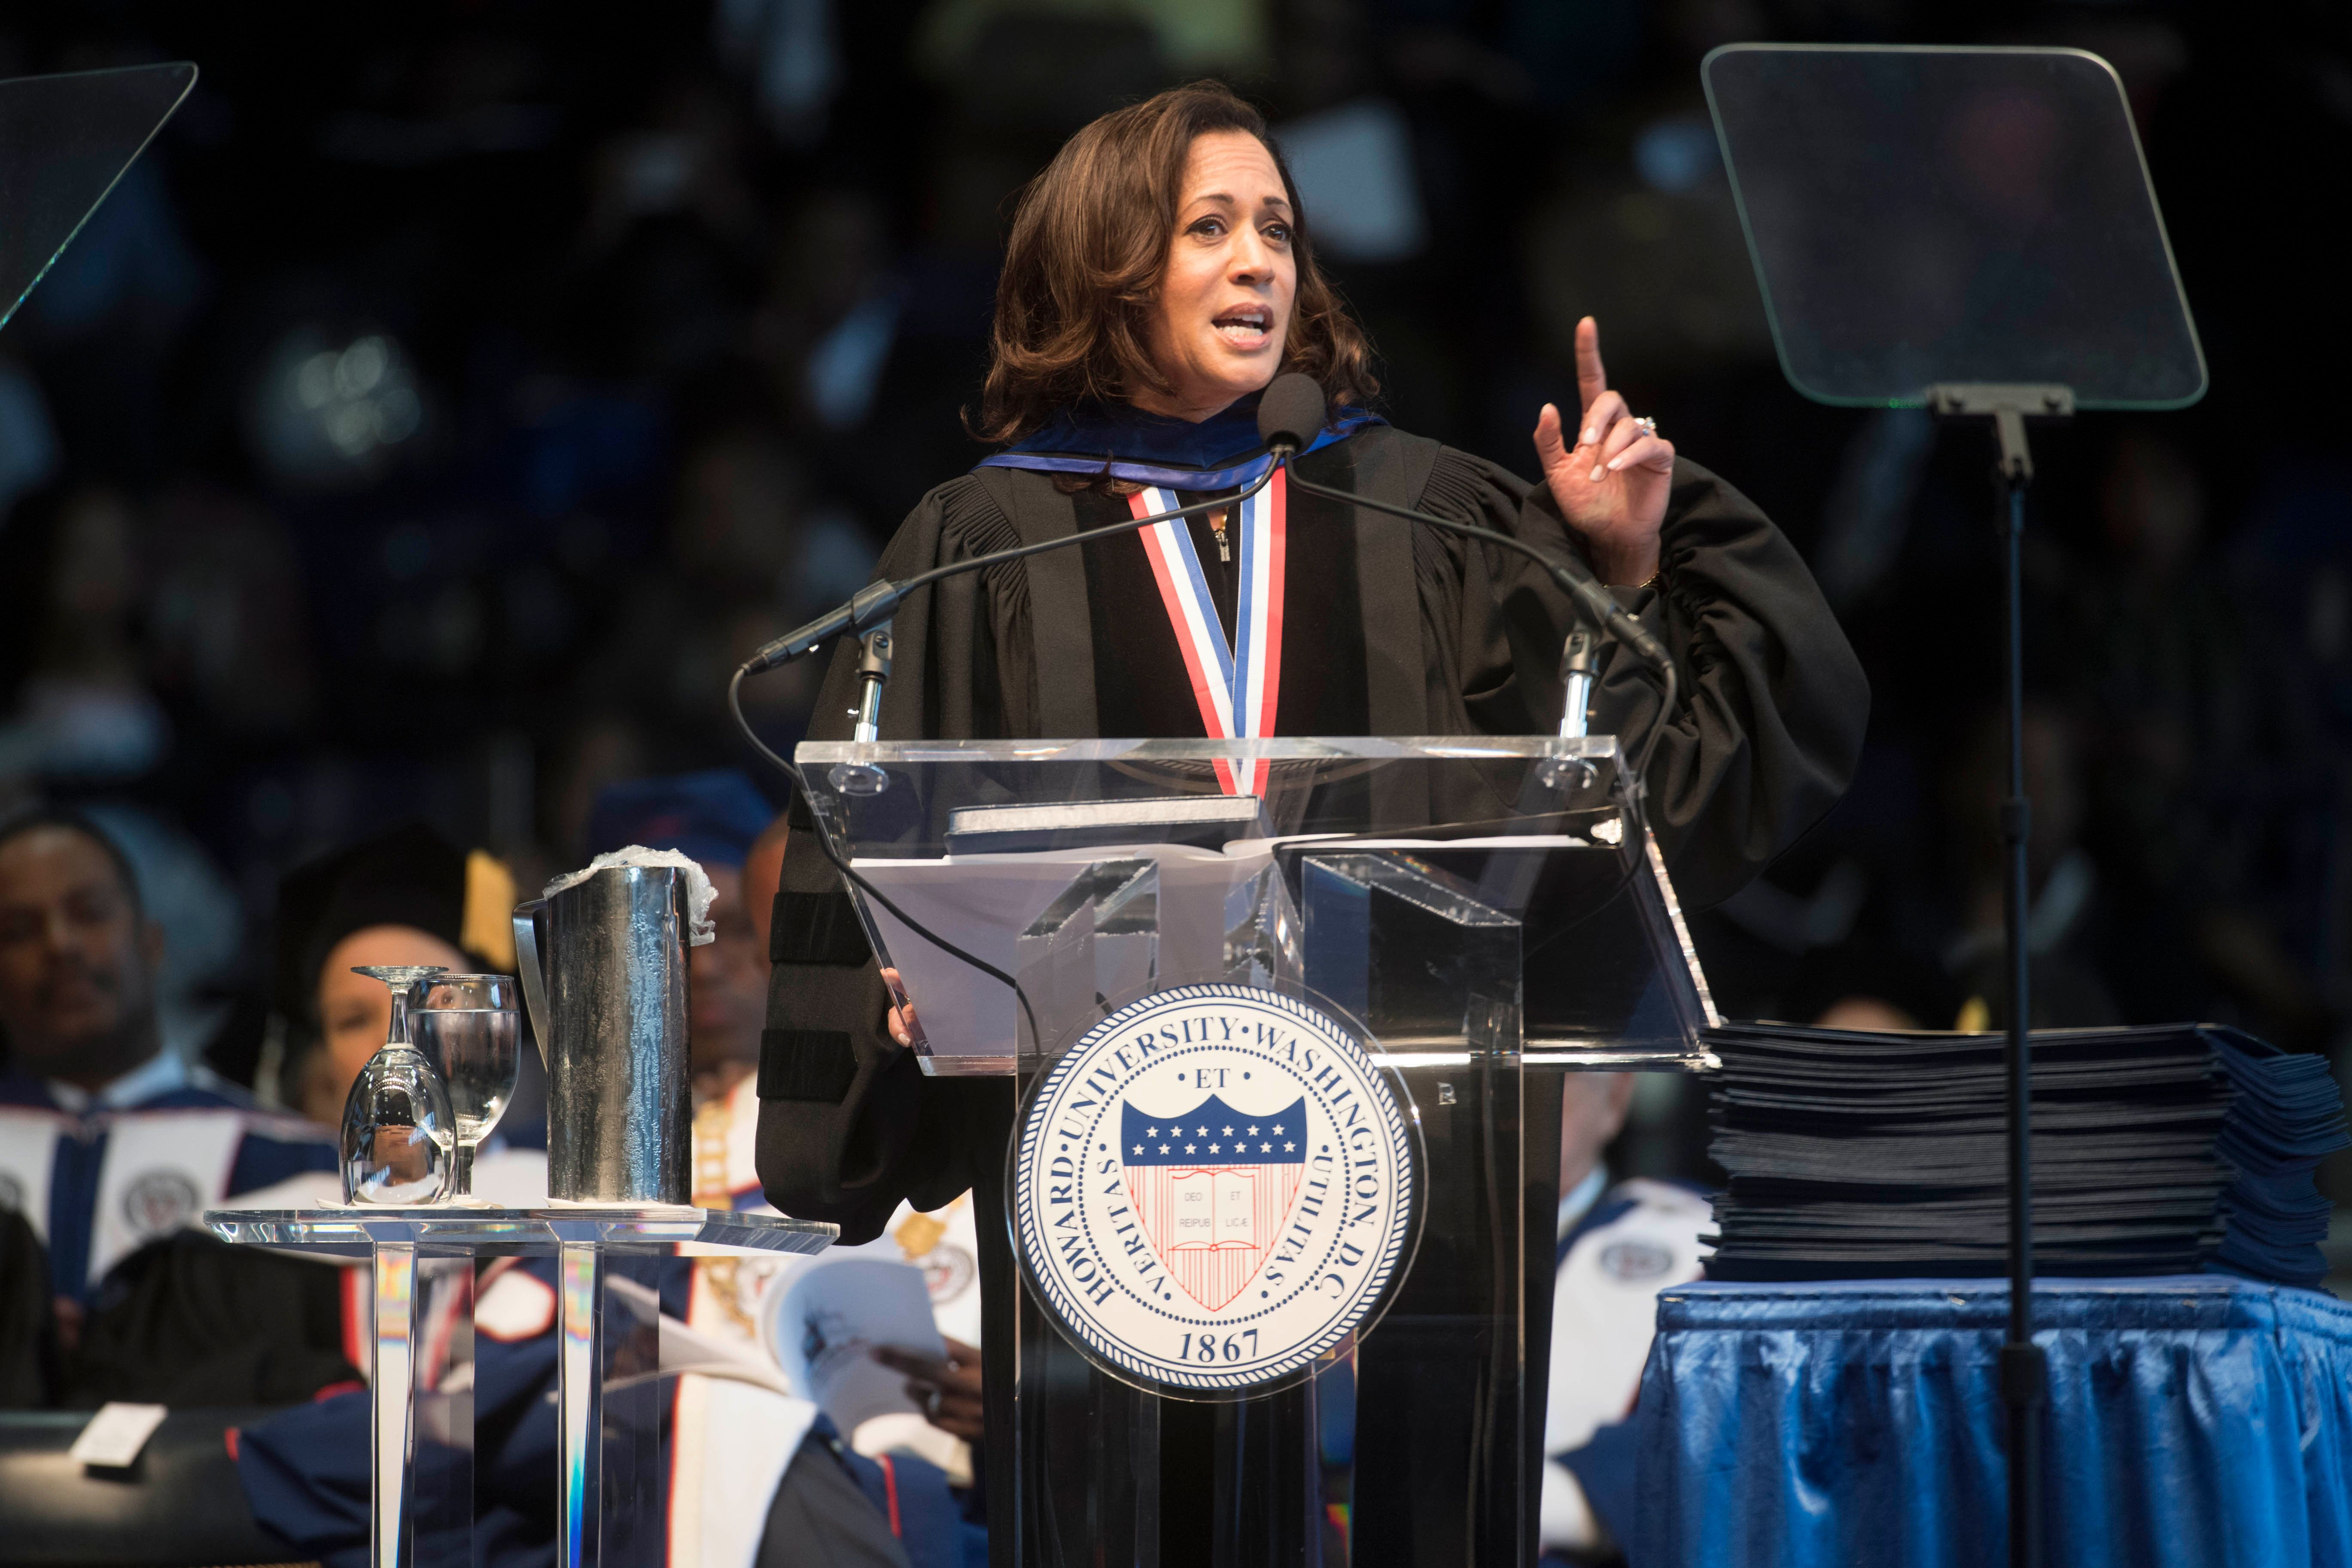 Sen. Kamala D. Harris (D-Ca.) gave the convocation oration for the 2017 Howard University Commencement Ceremony in Washington